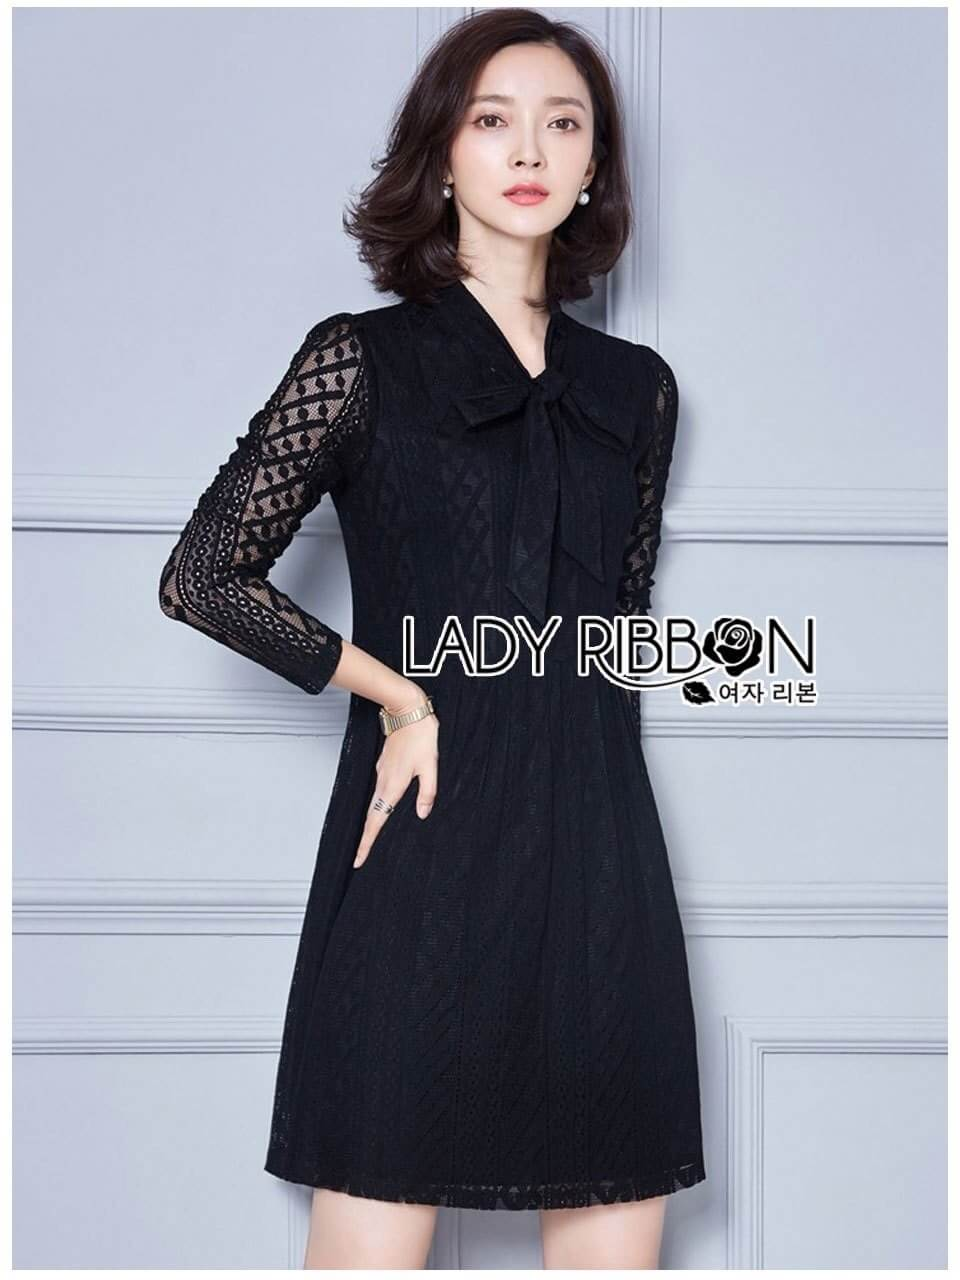 &#x1F380 Lady Ribbon's Made &#x1F380 Lady Kathy Sweet Feminine Black Lace Dress with Ribbon